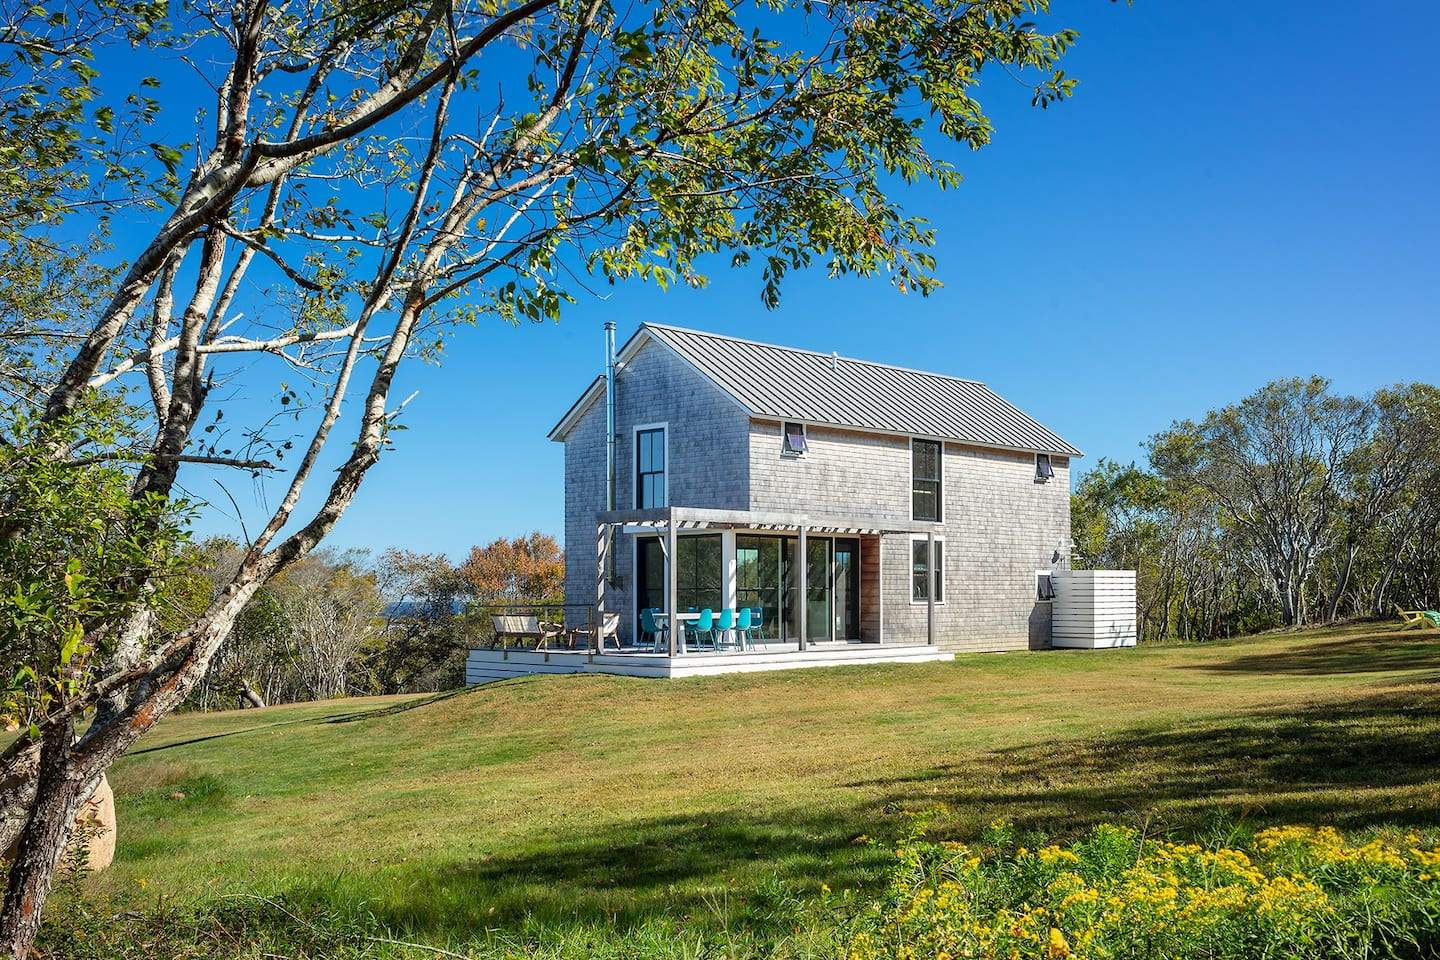 Best Block Island Rhode Island Vacation Rental